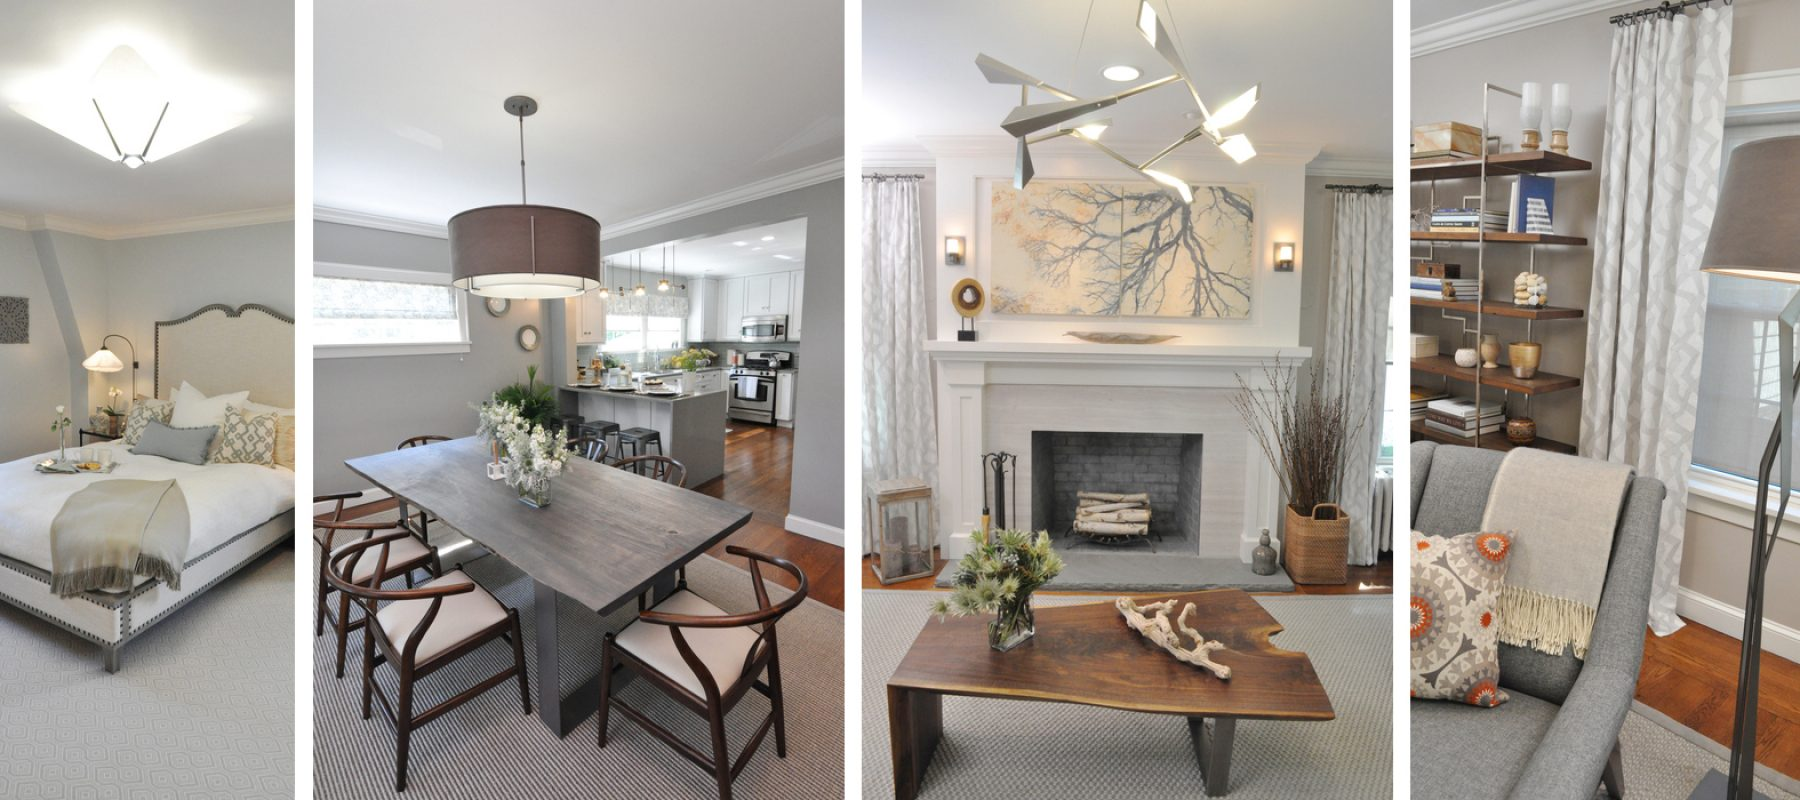 Property Brothers project featuring Hubbardton Forge Lighting